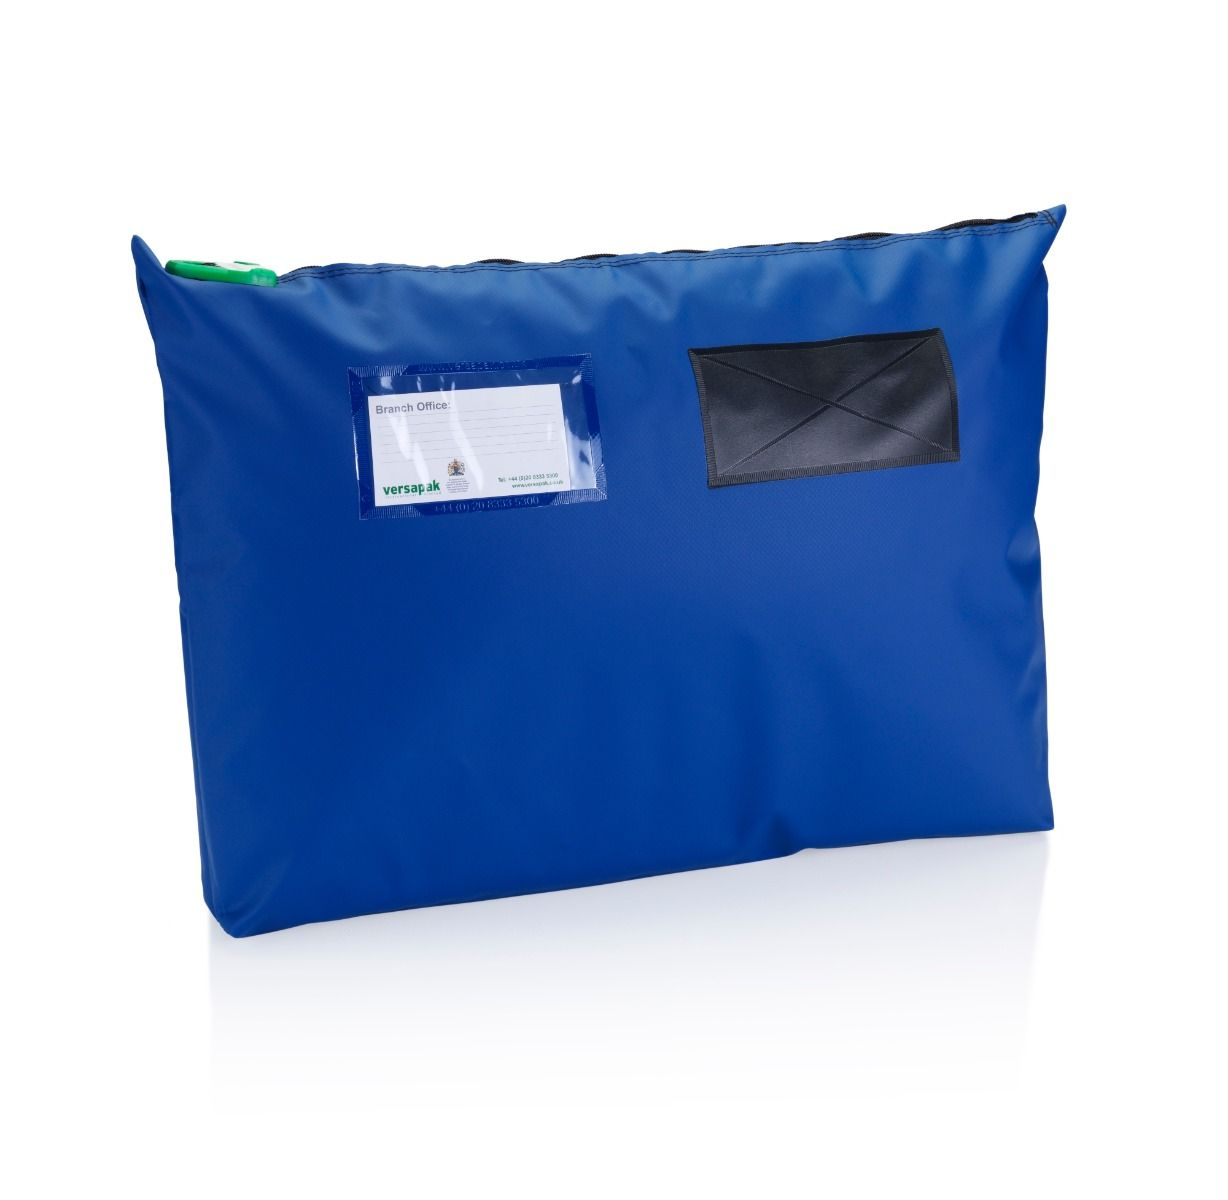 Large Single Seam Mail Pouch - Gusset